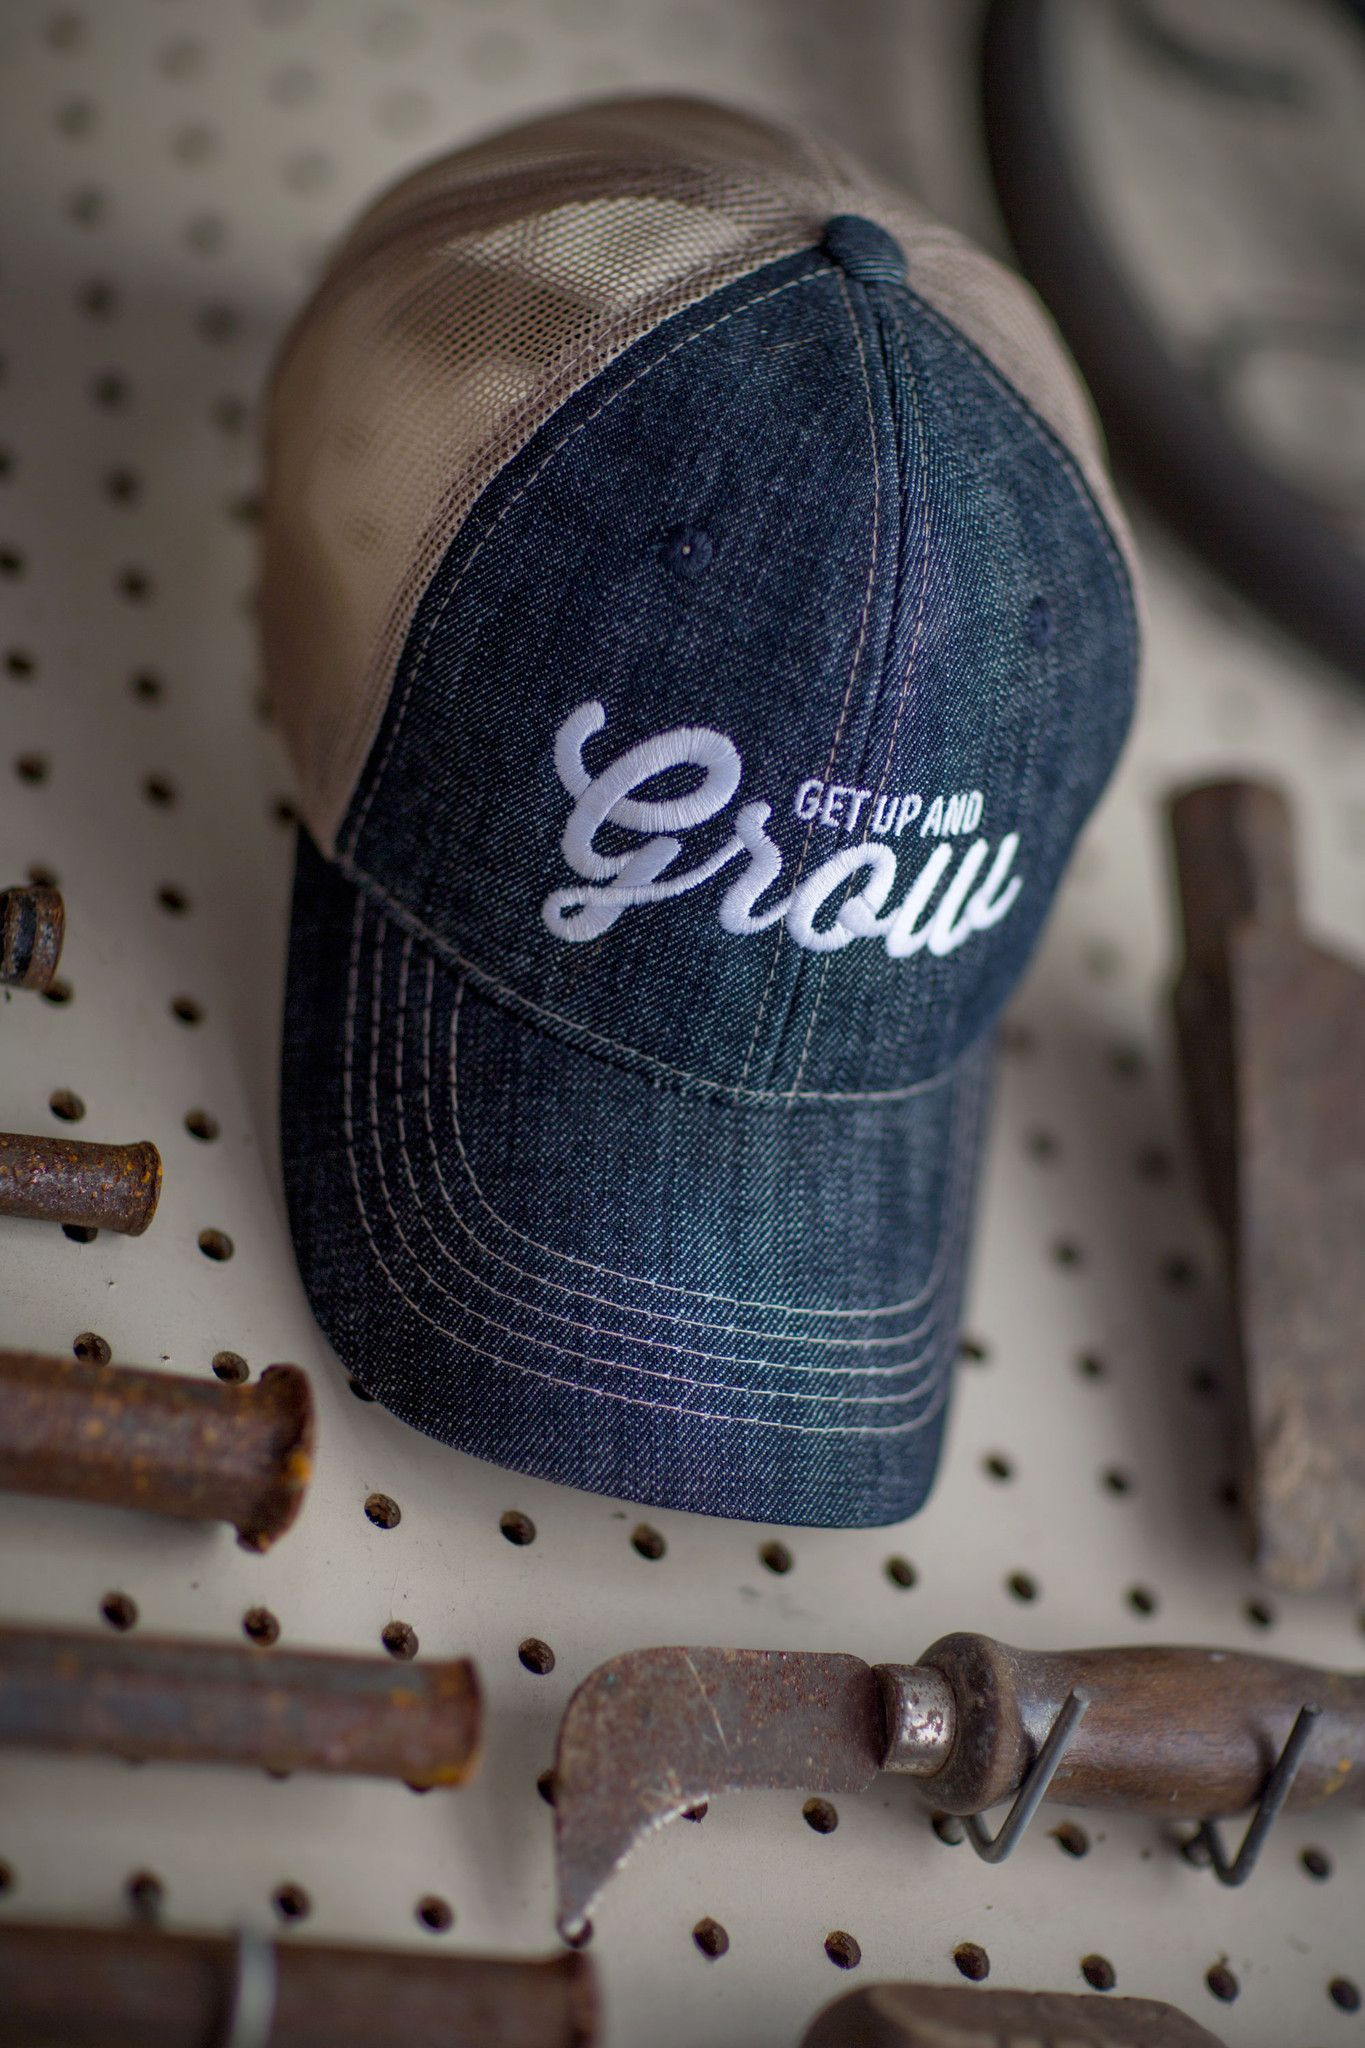 GET UP AND GROW TRUCKER CAP